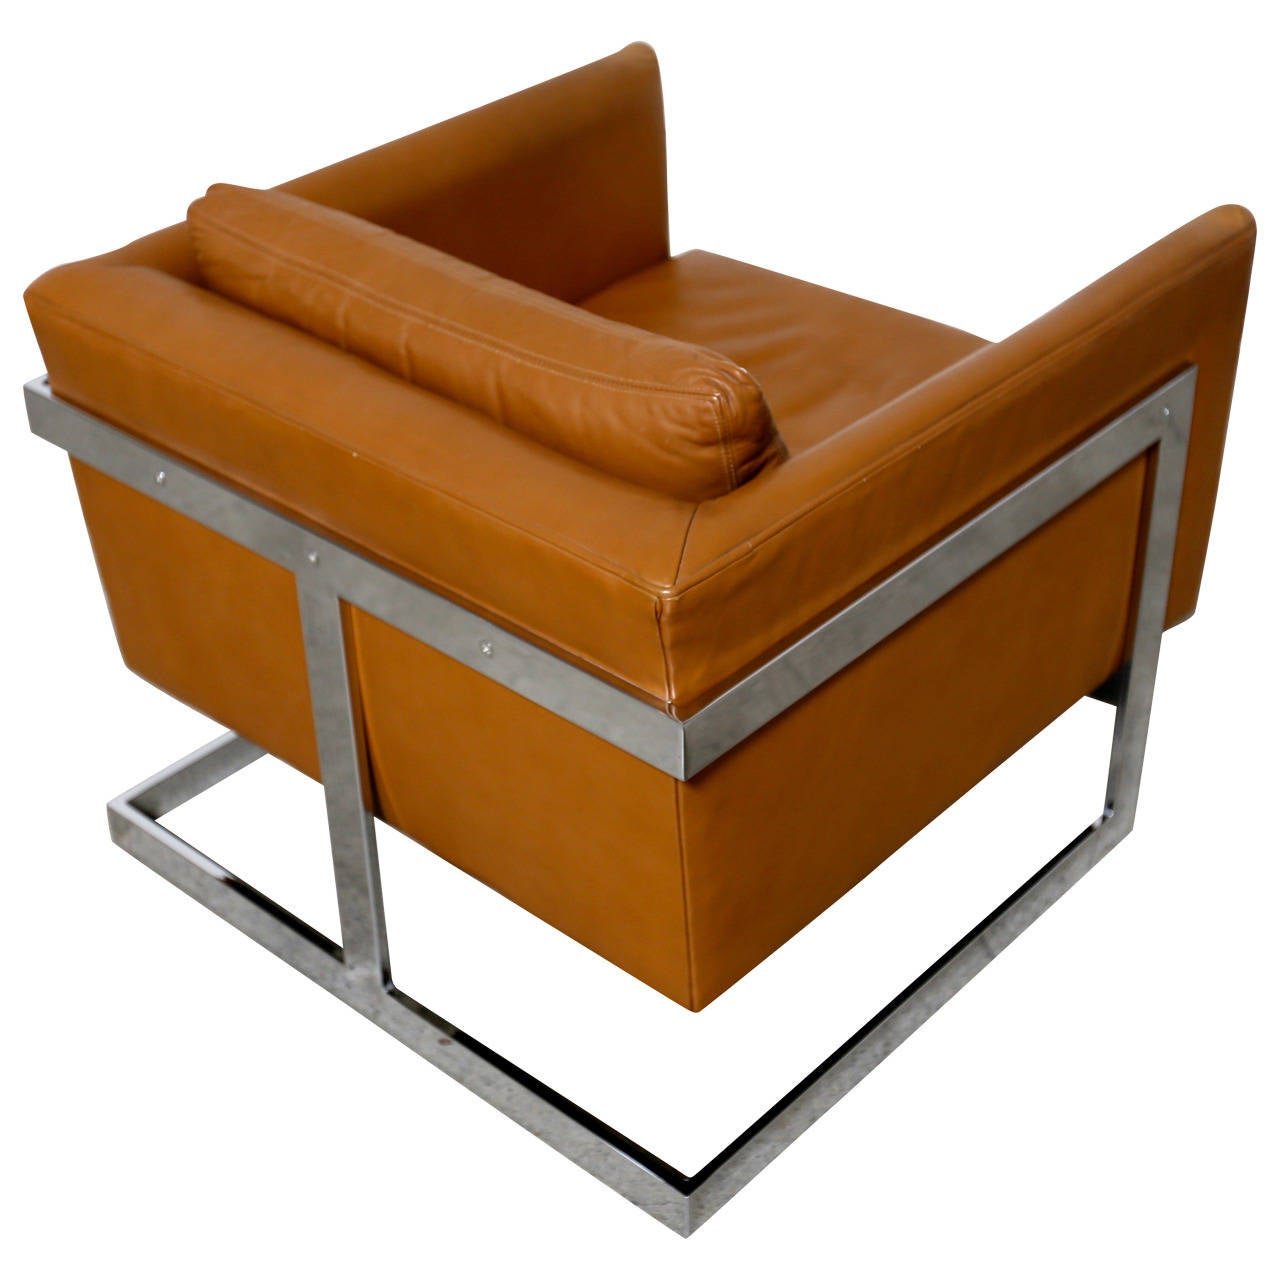 "Original Leather ""Cube"" Chair by Milo Baughman For Sale at"